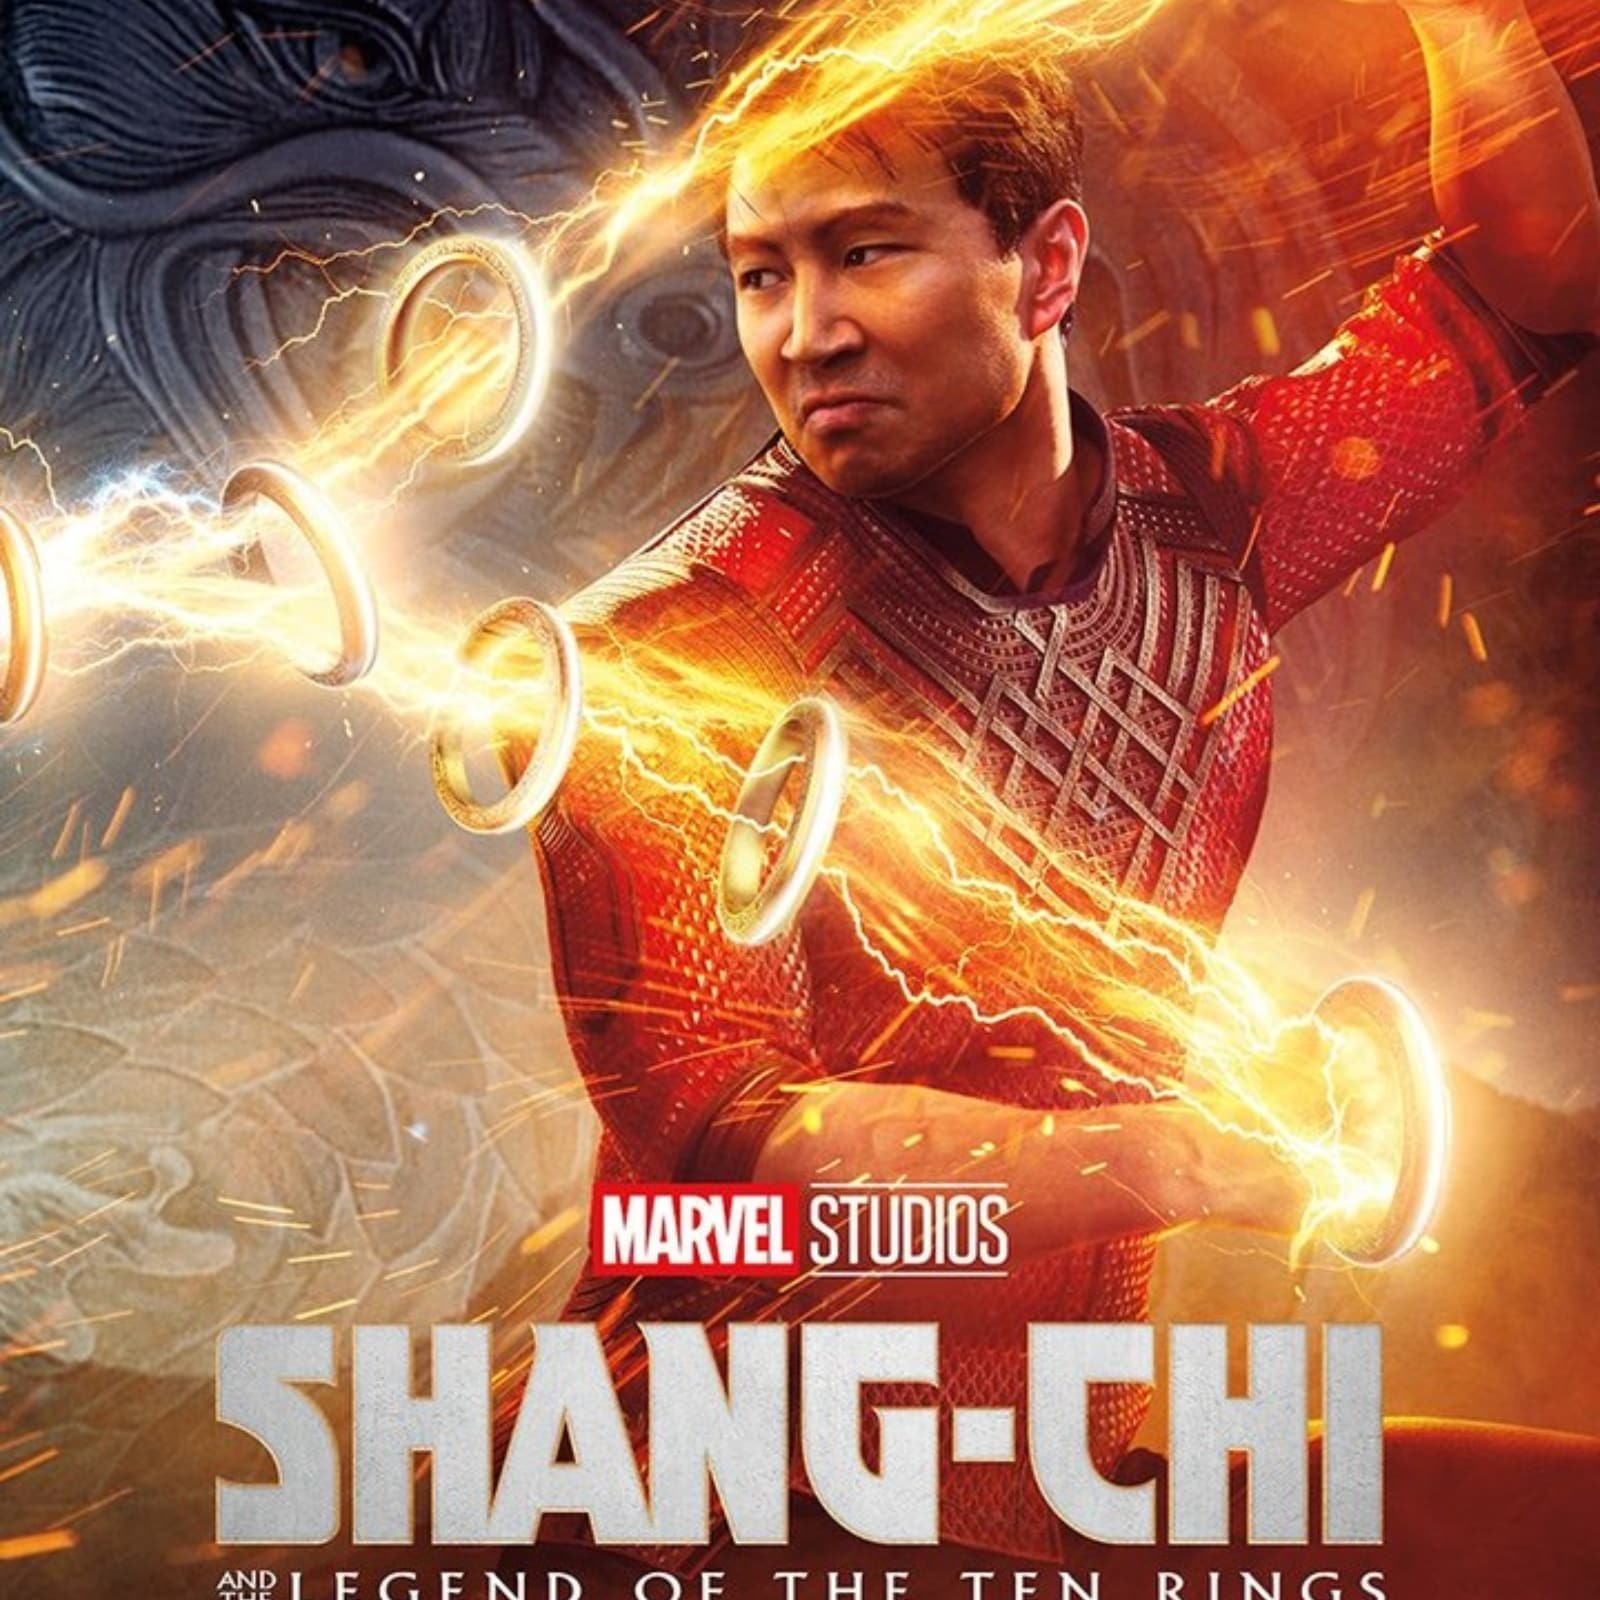 Shang-Chi and the Legend of the Ten Rings Could be the Next Cultural Phenomenon